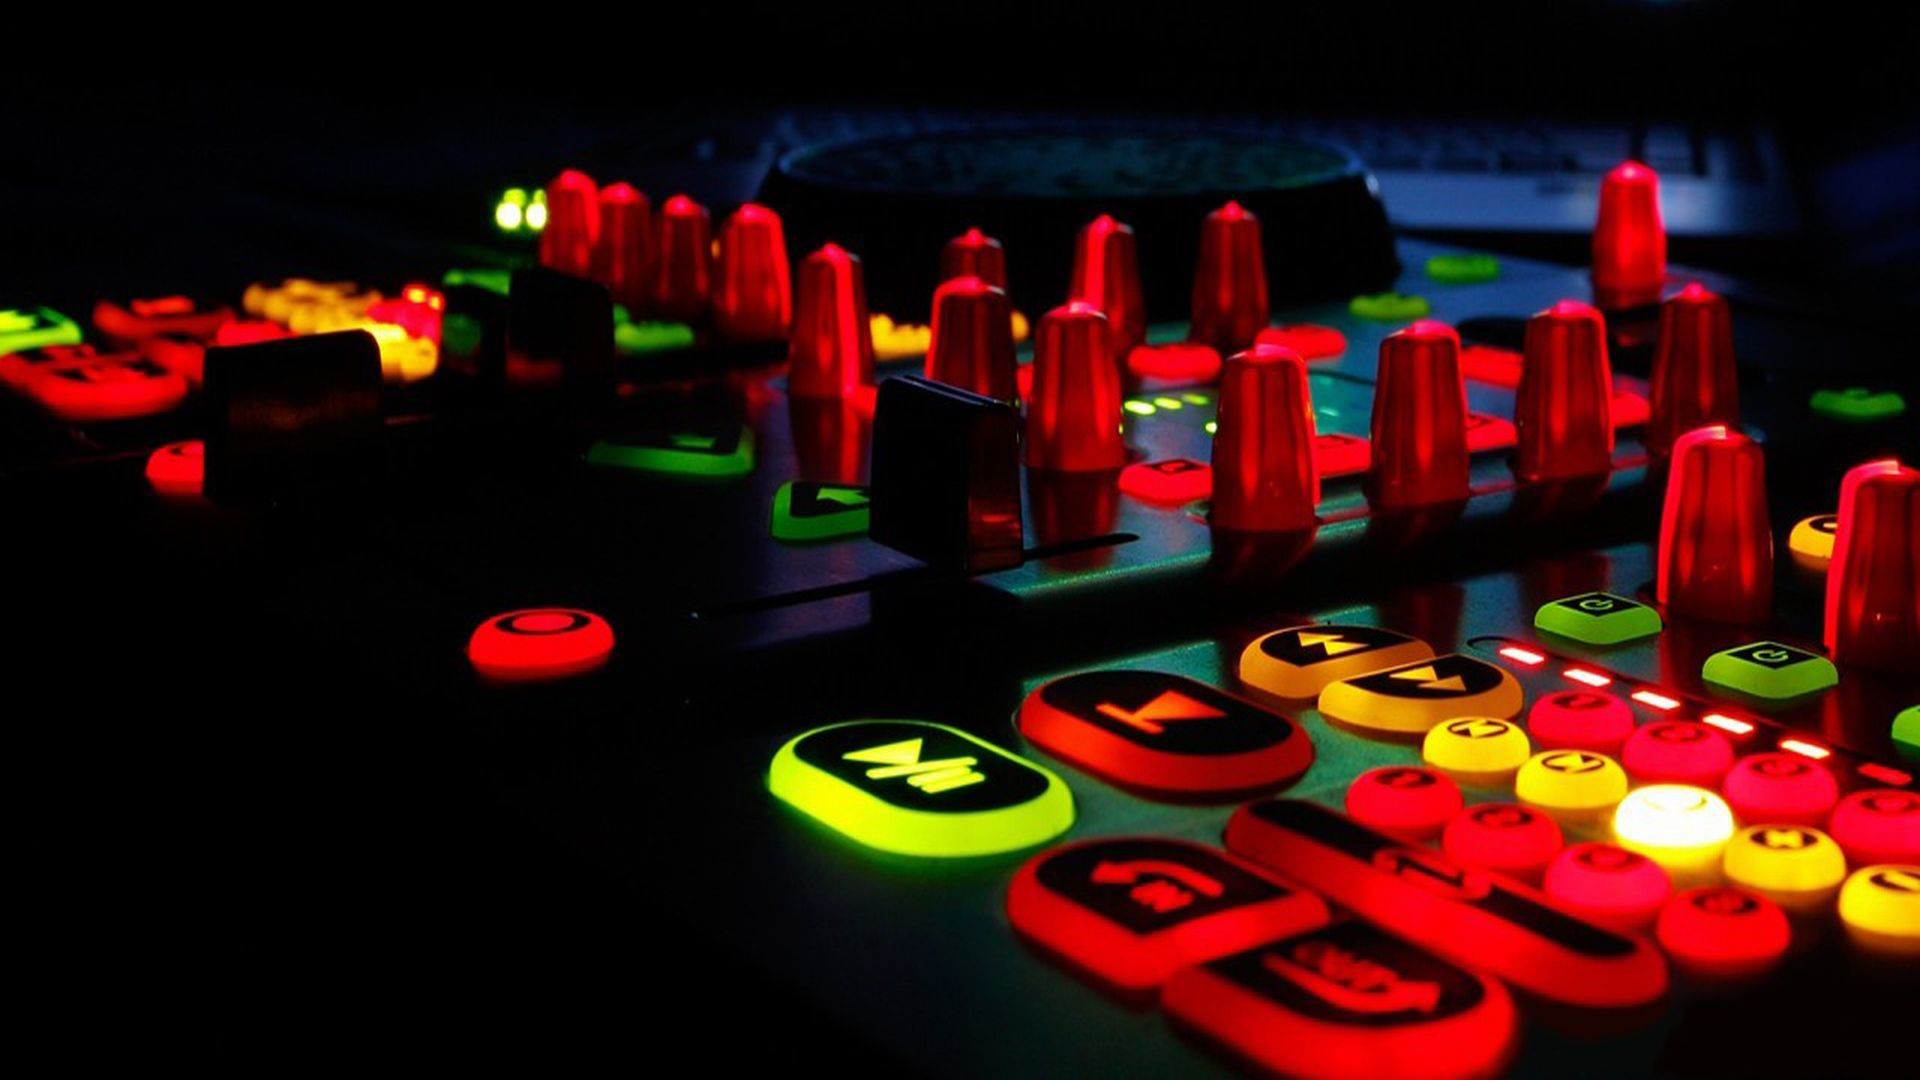 Dj Hd Wallpapers 1080p 83 Images